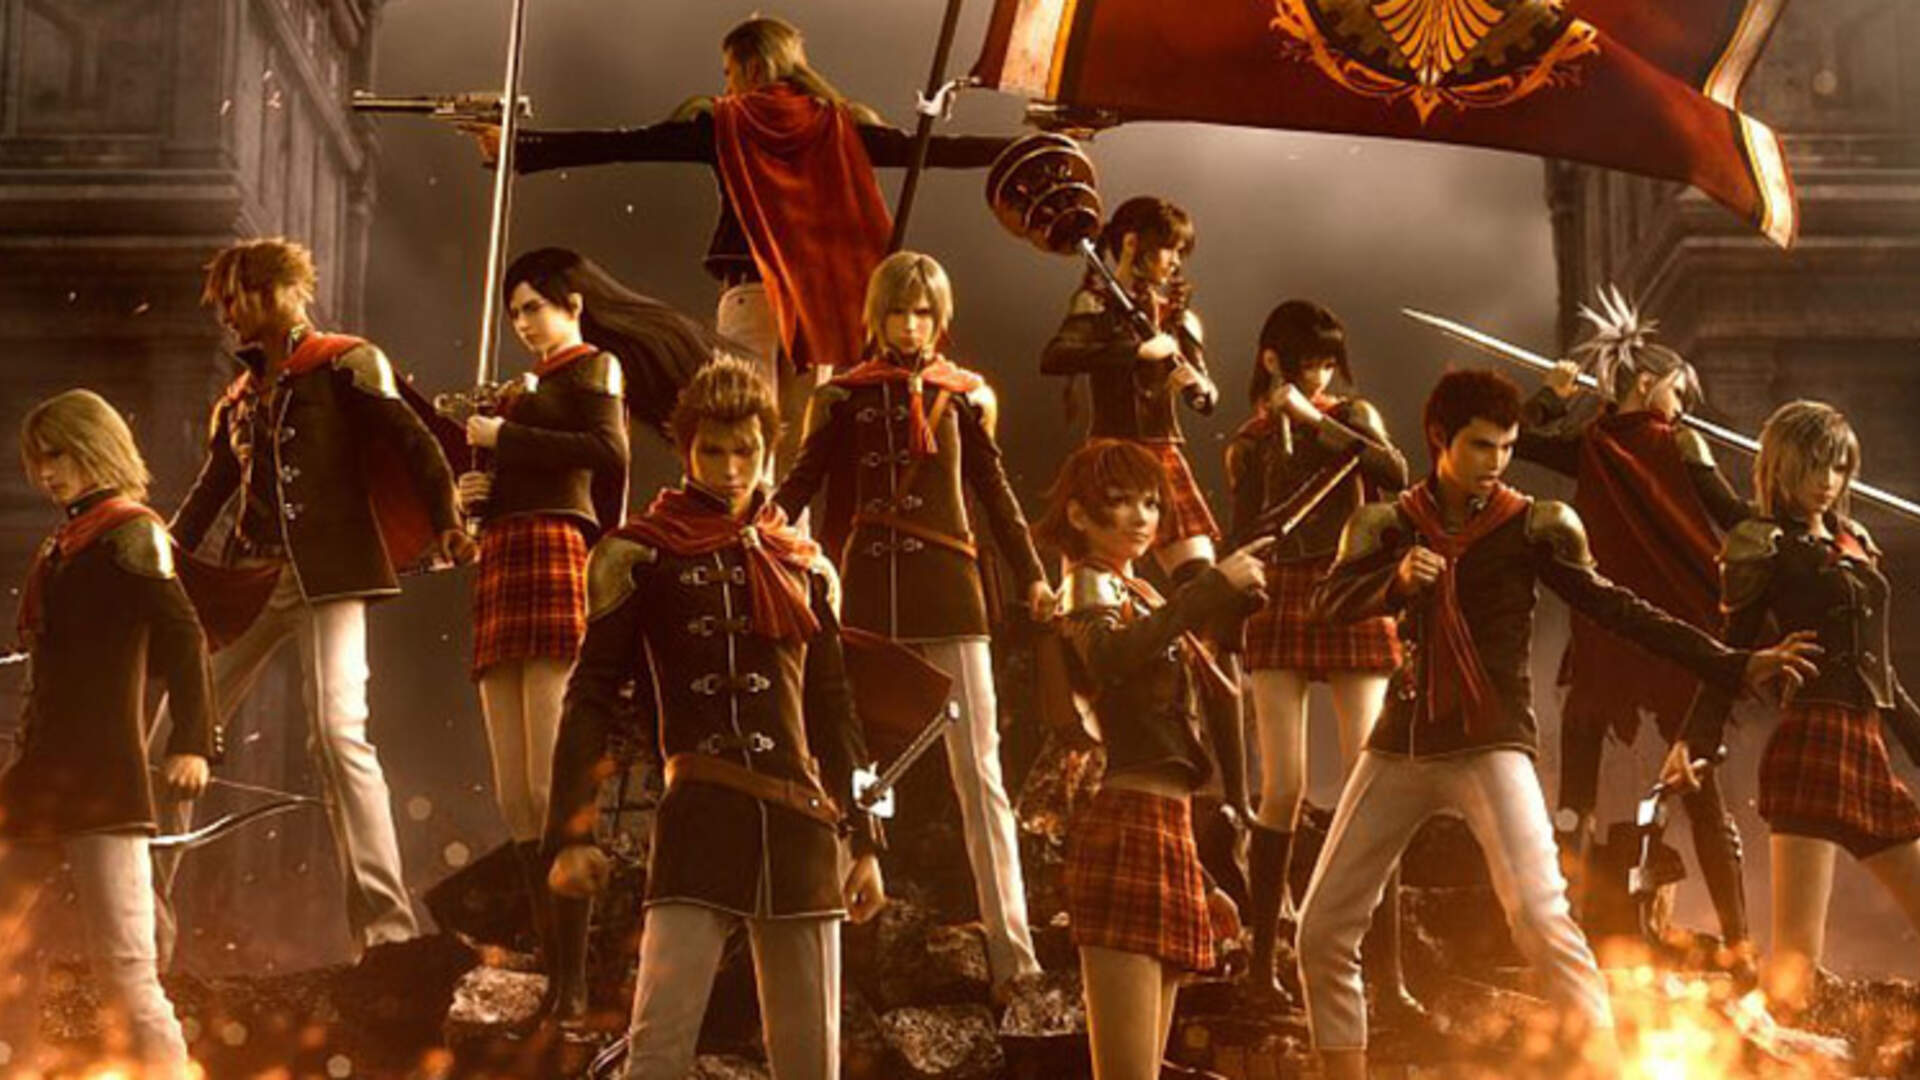 Final Fantasy Type 0 HD Review: For Old Times' Sake